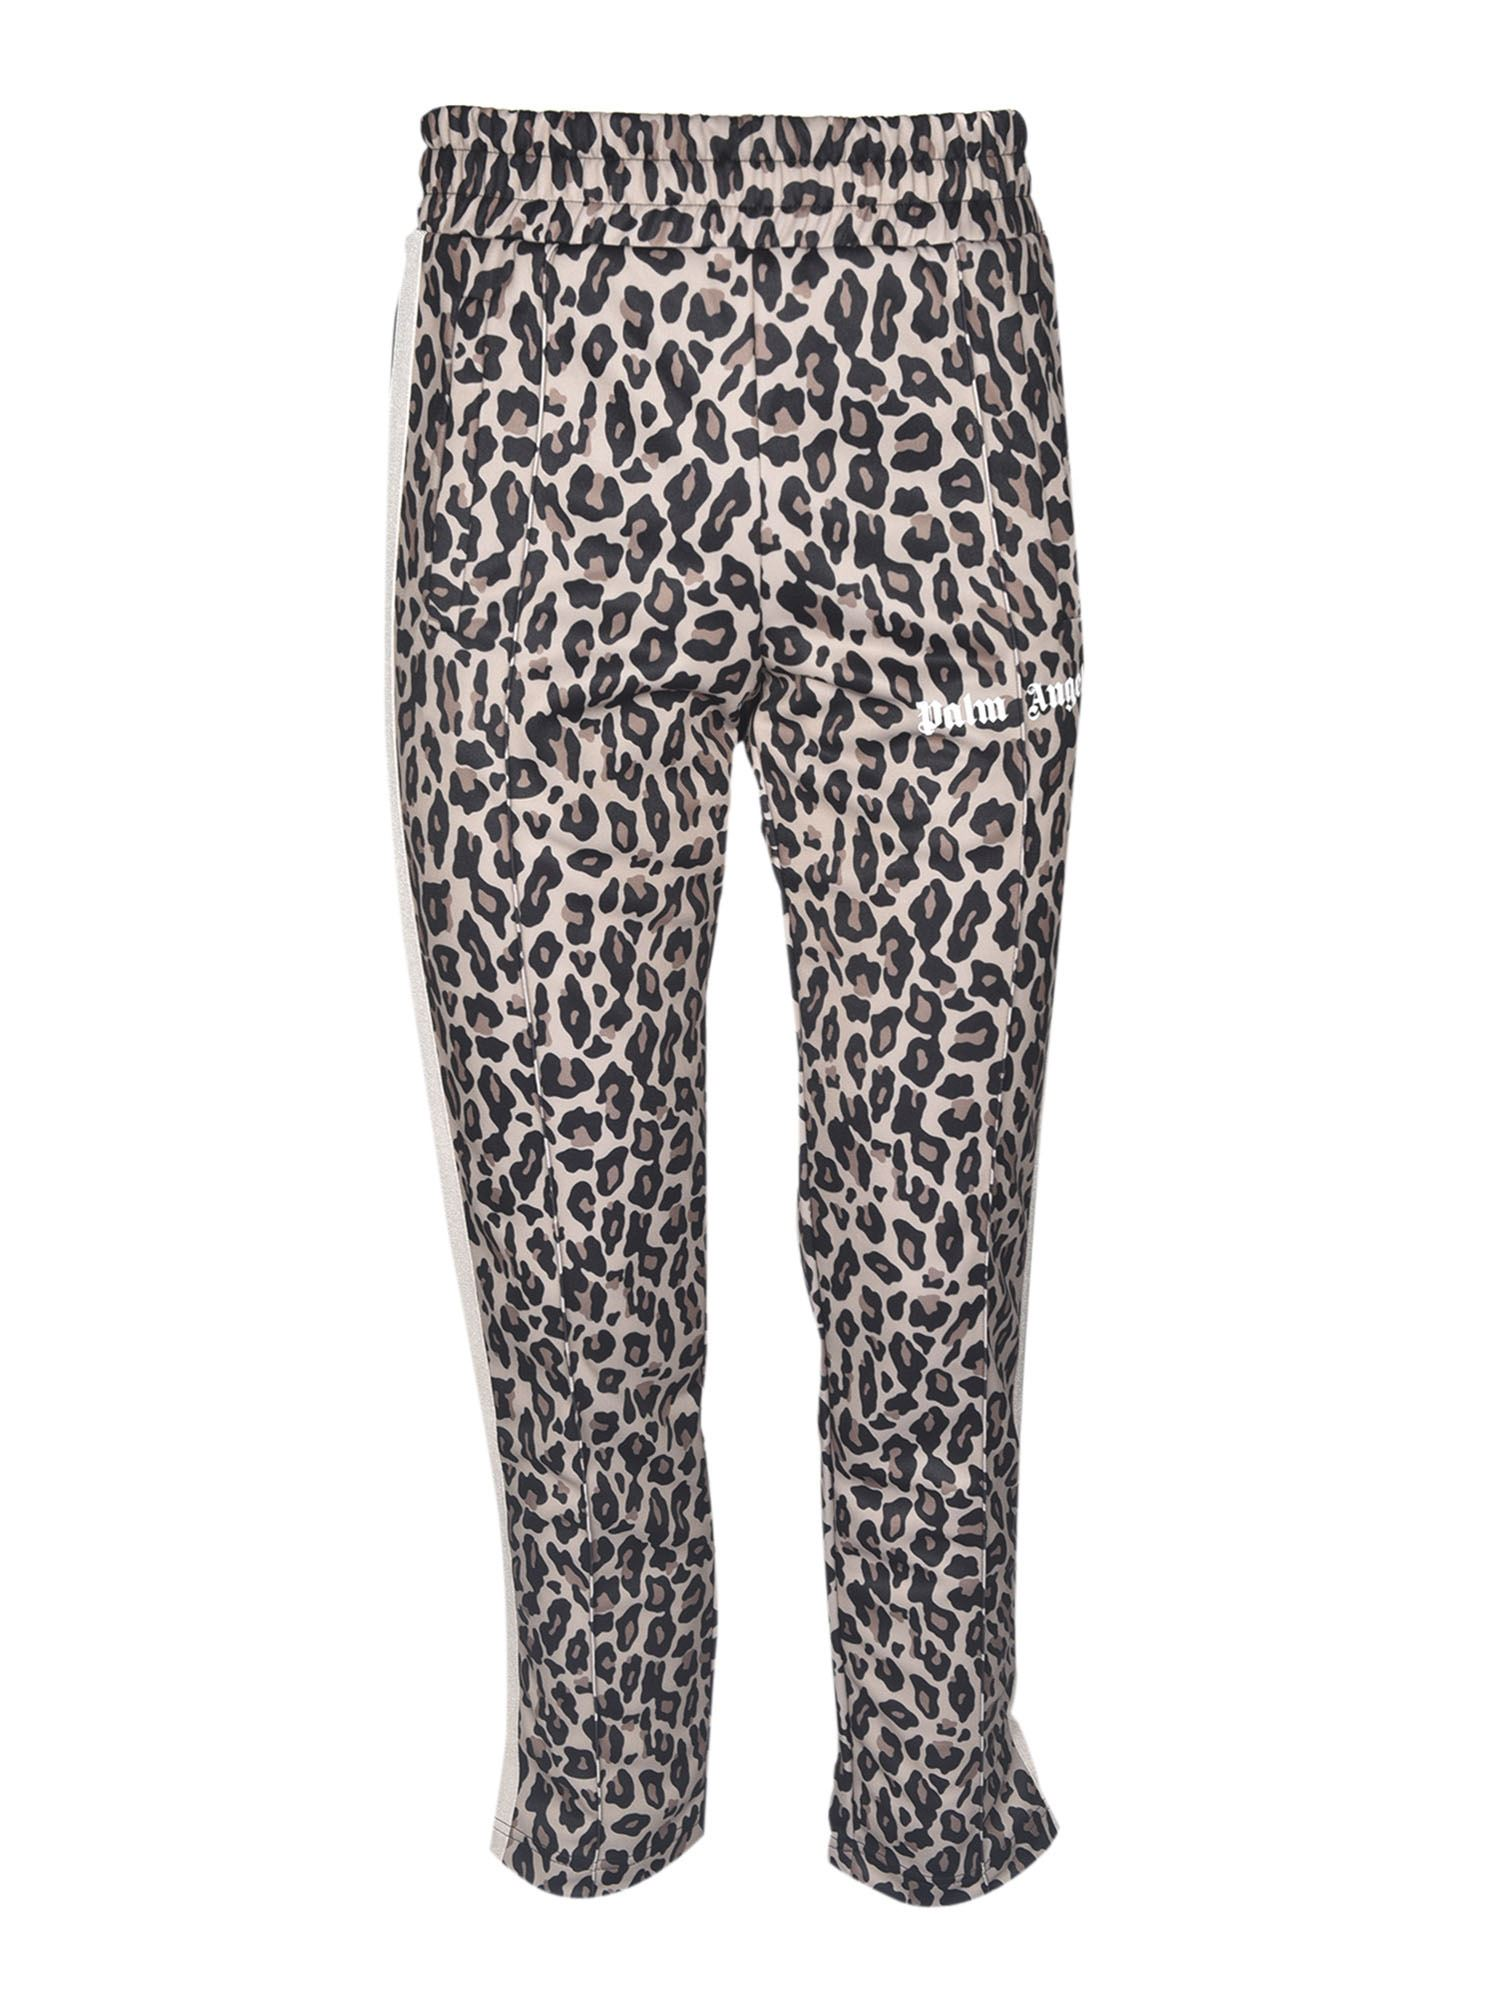 Palm Angels LEOPARD TRACK PANTS IN YELLOW WHITE